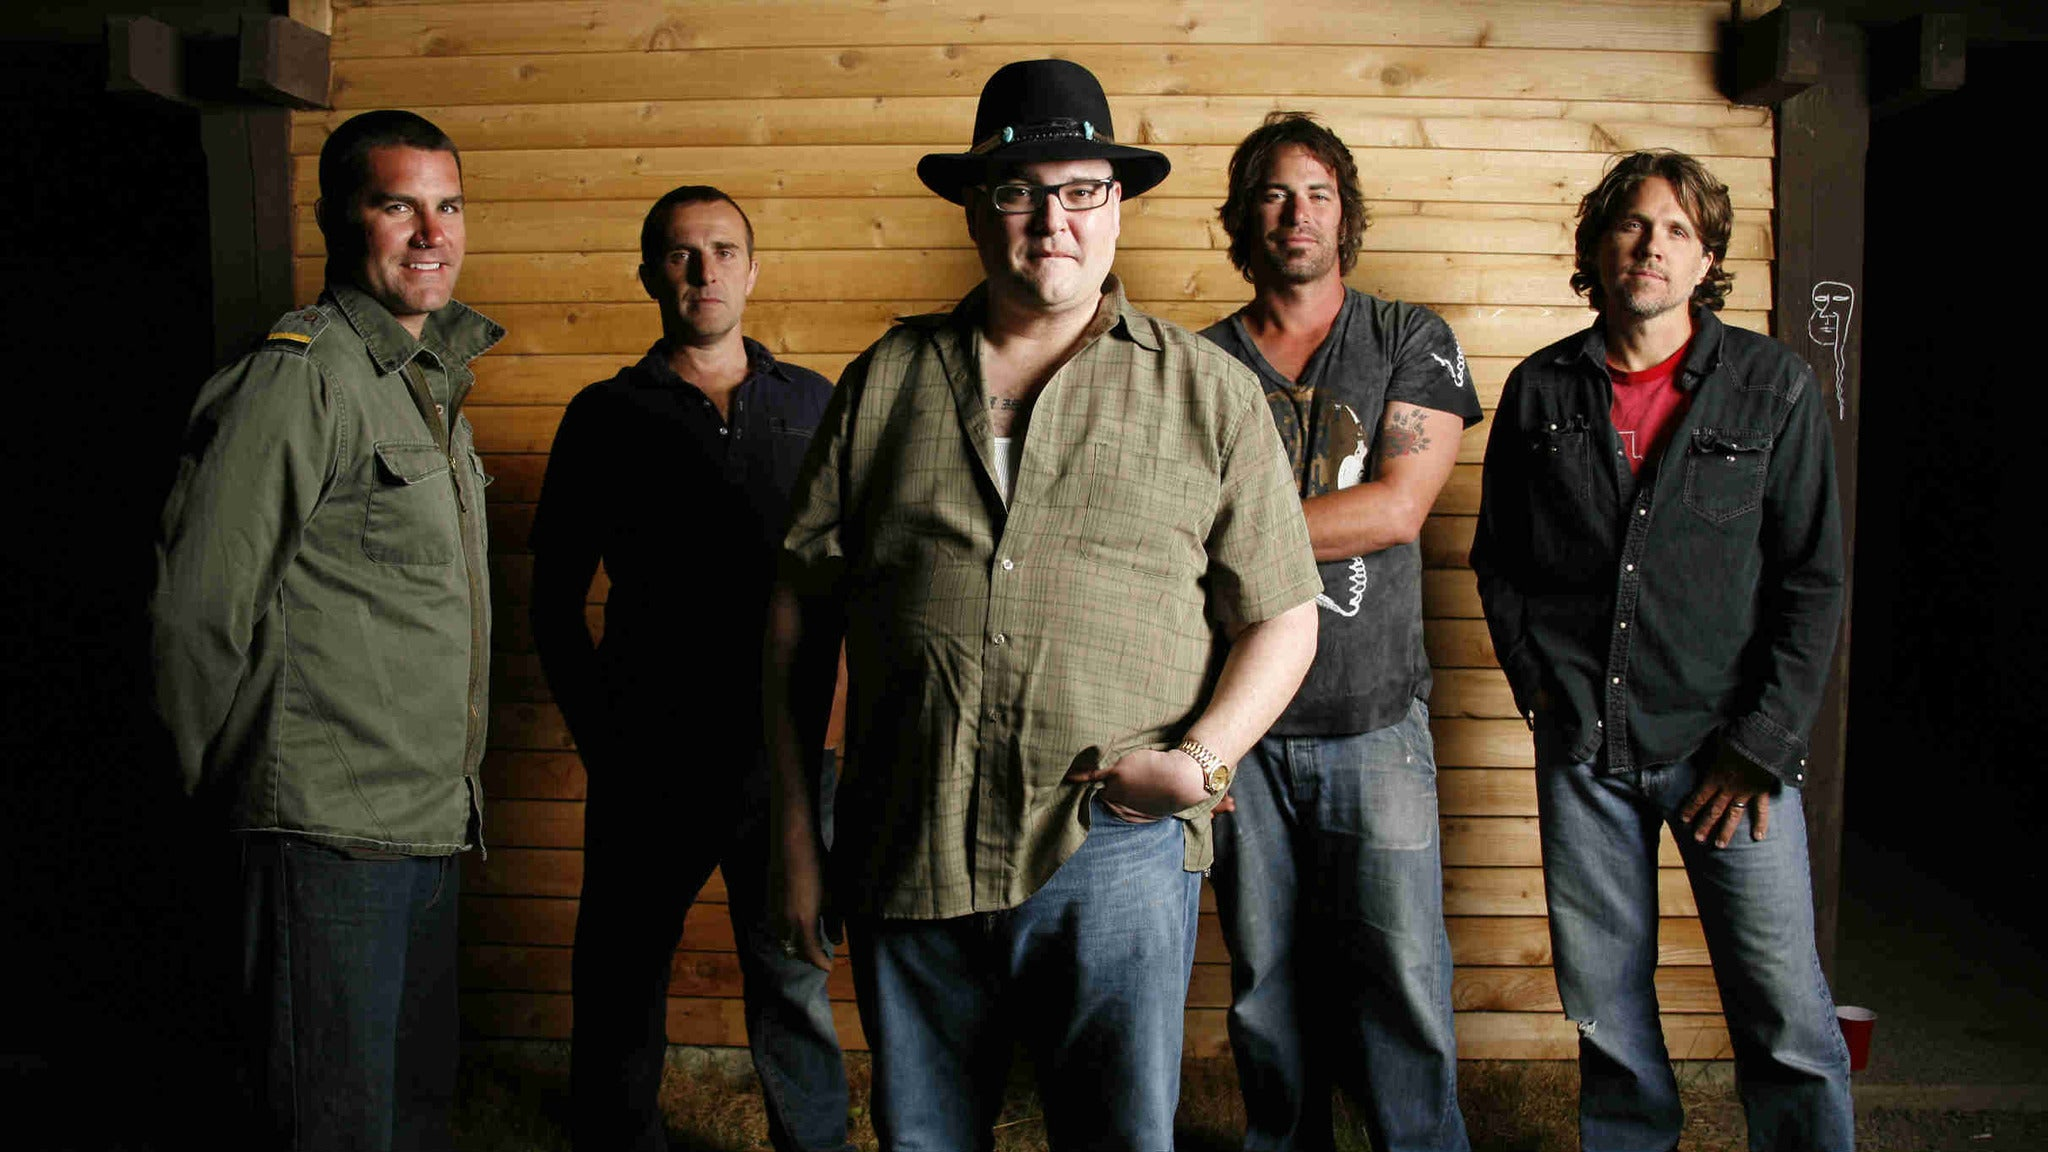 Blues Traveler at Iron City-Birmingham